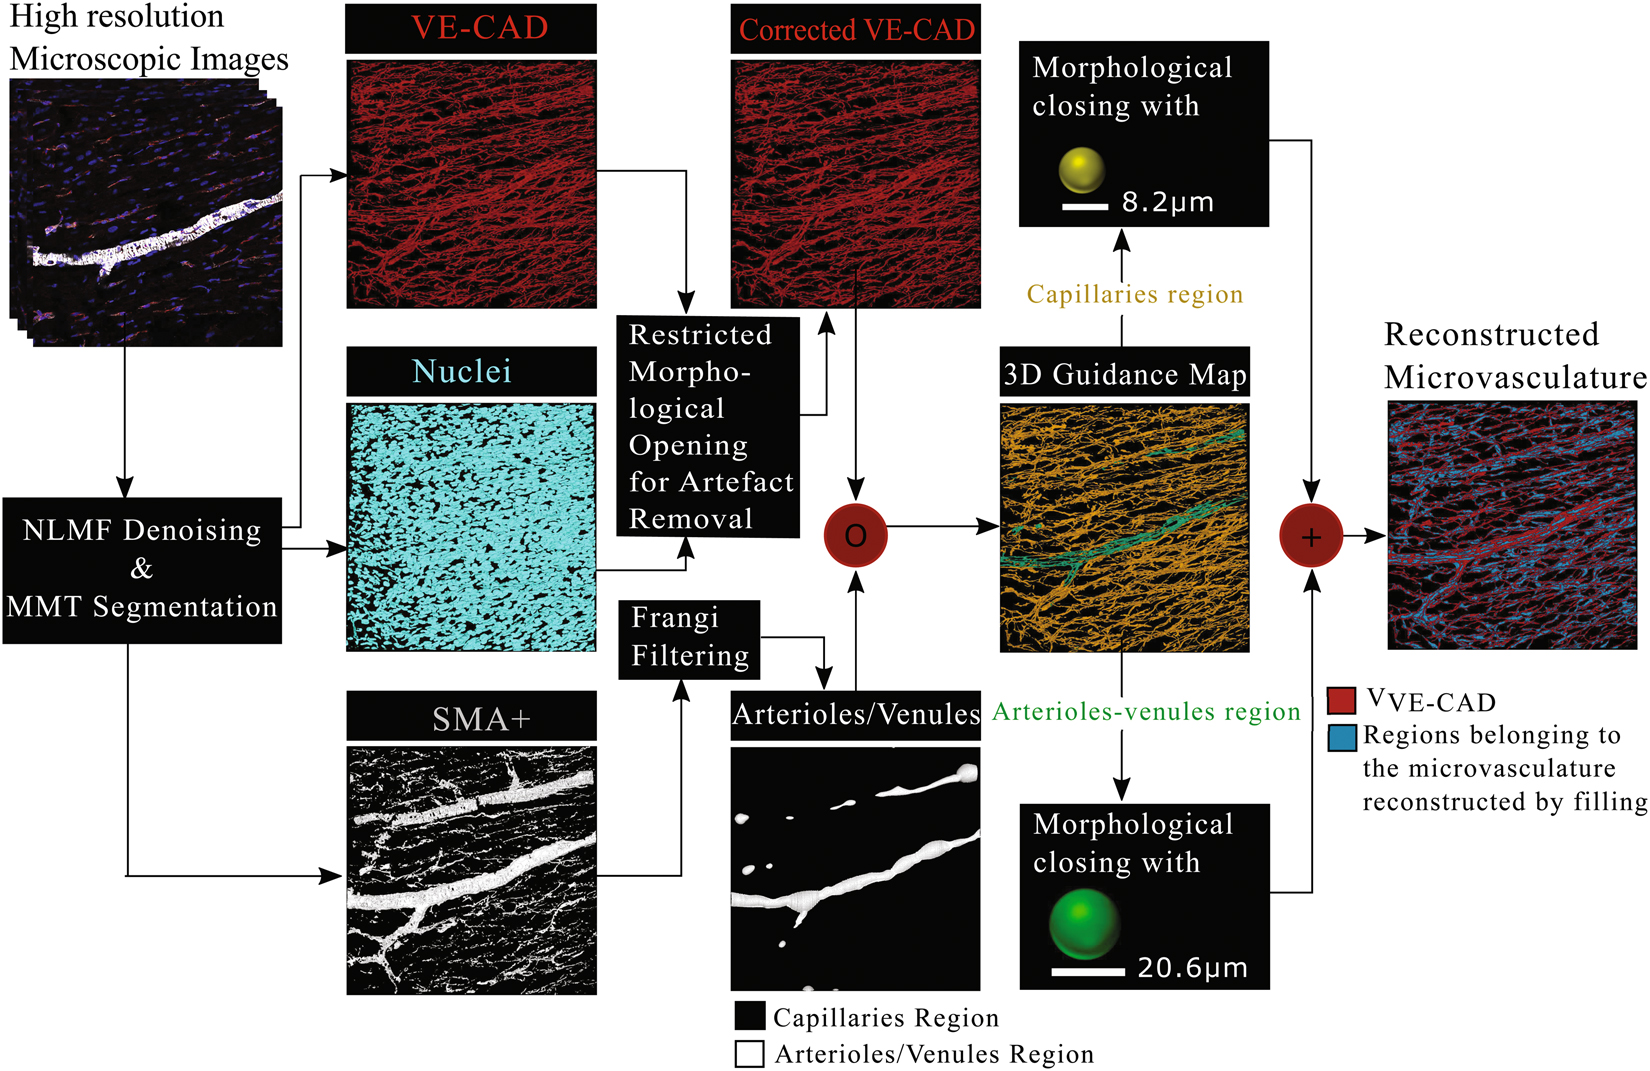 Deciphering microvascular changes after myocardial infarction